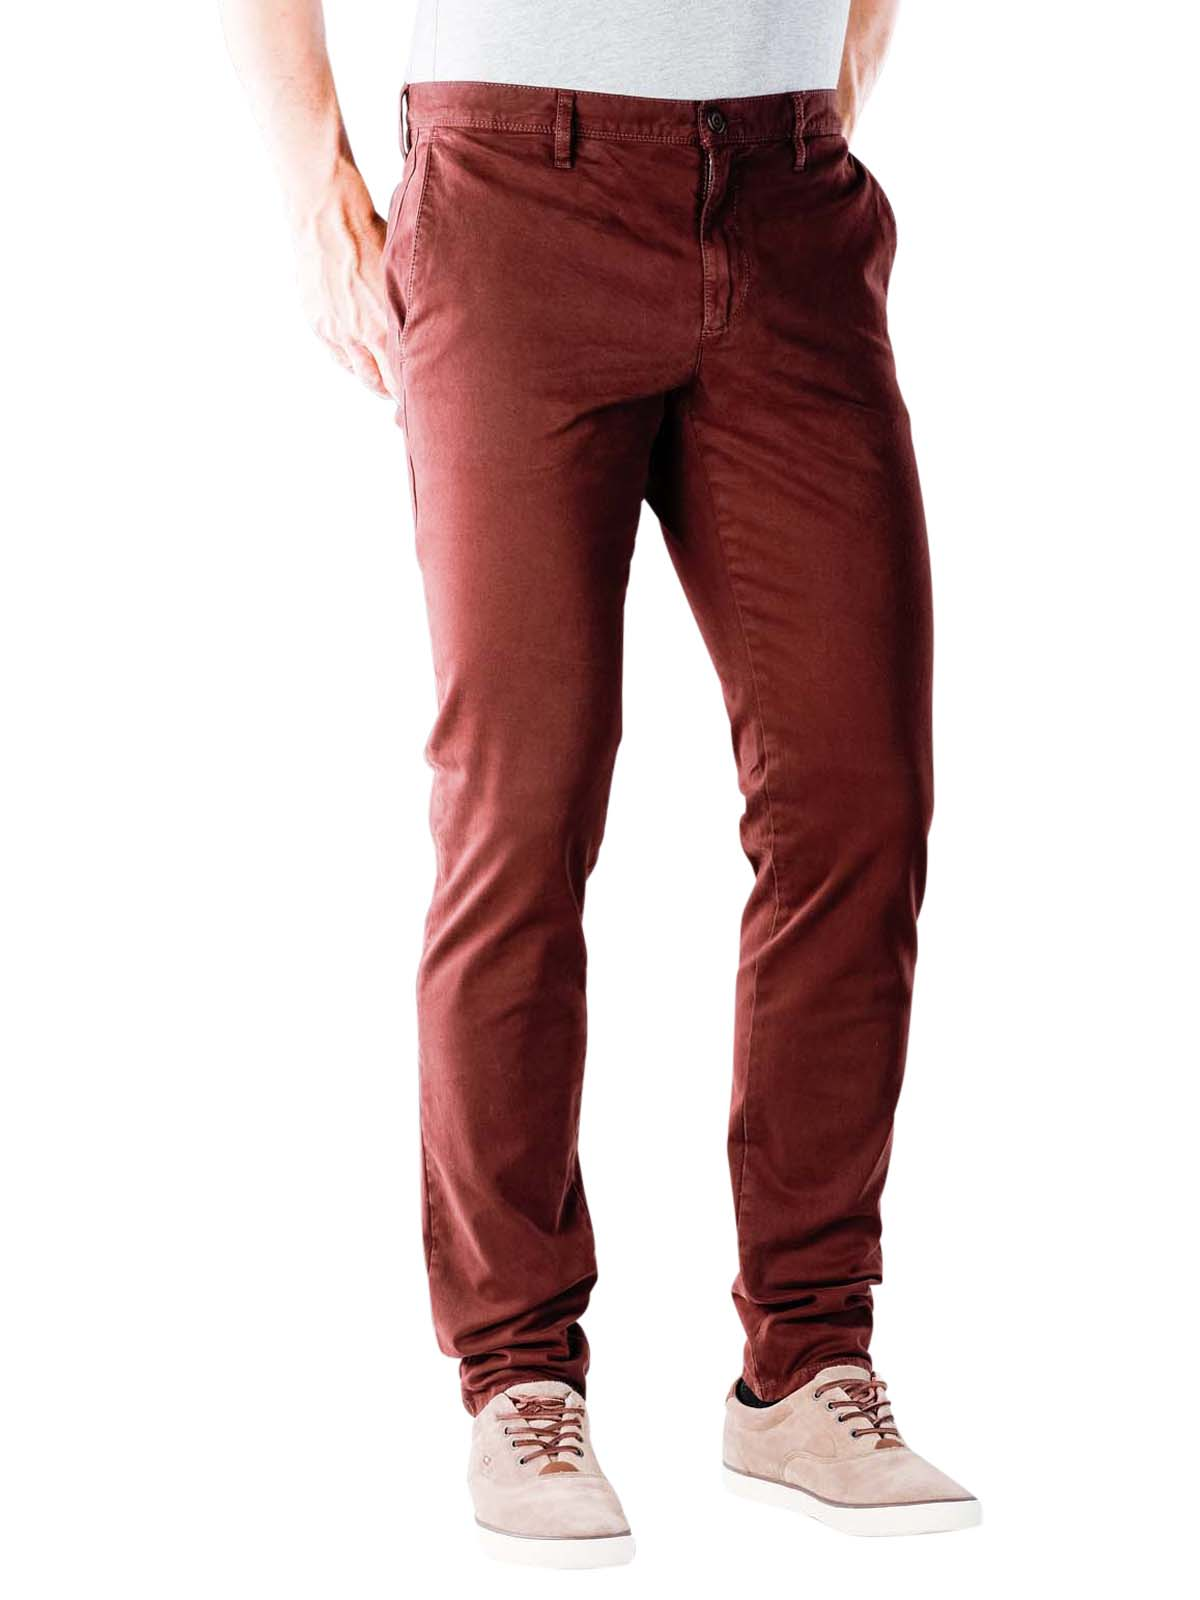 Slim Fit size W30 L34 LACOSTE Men/'s Red Twill Chino Trousers Pants